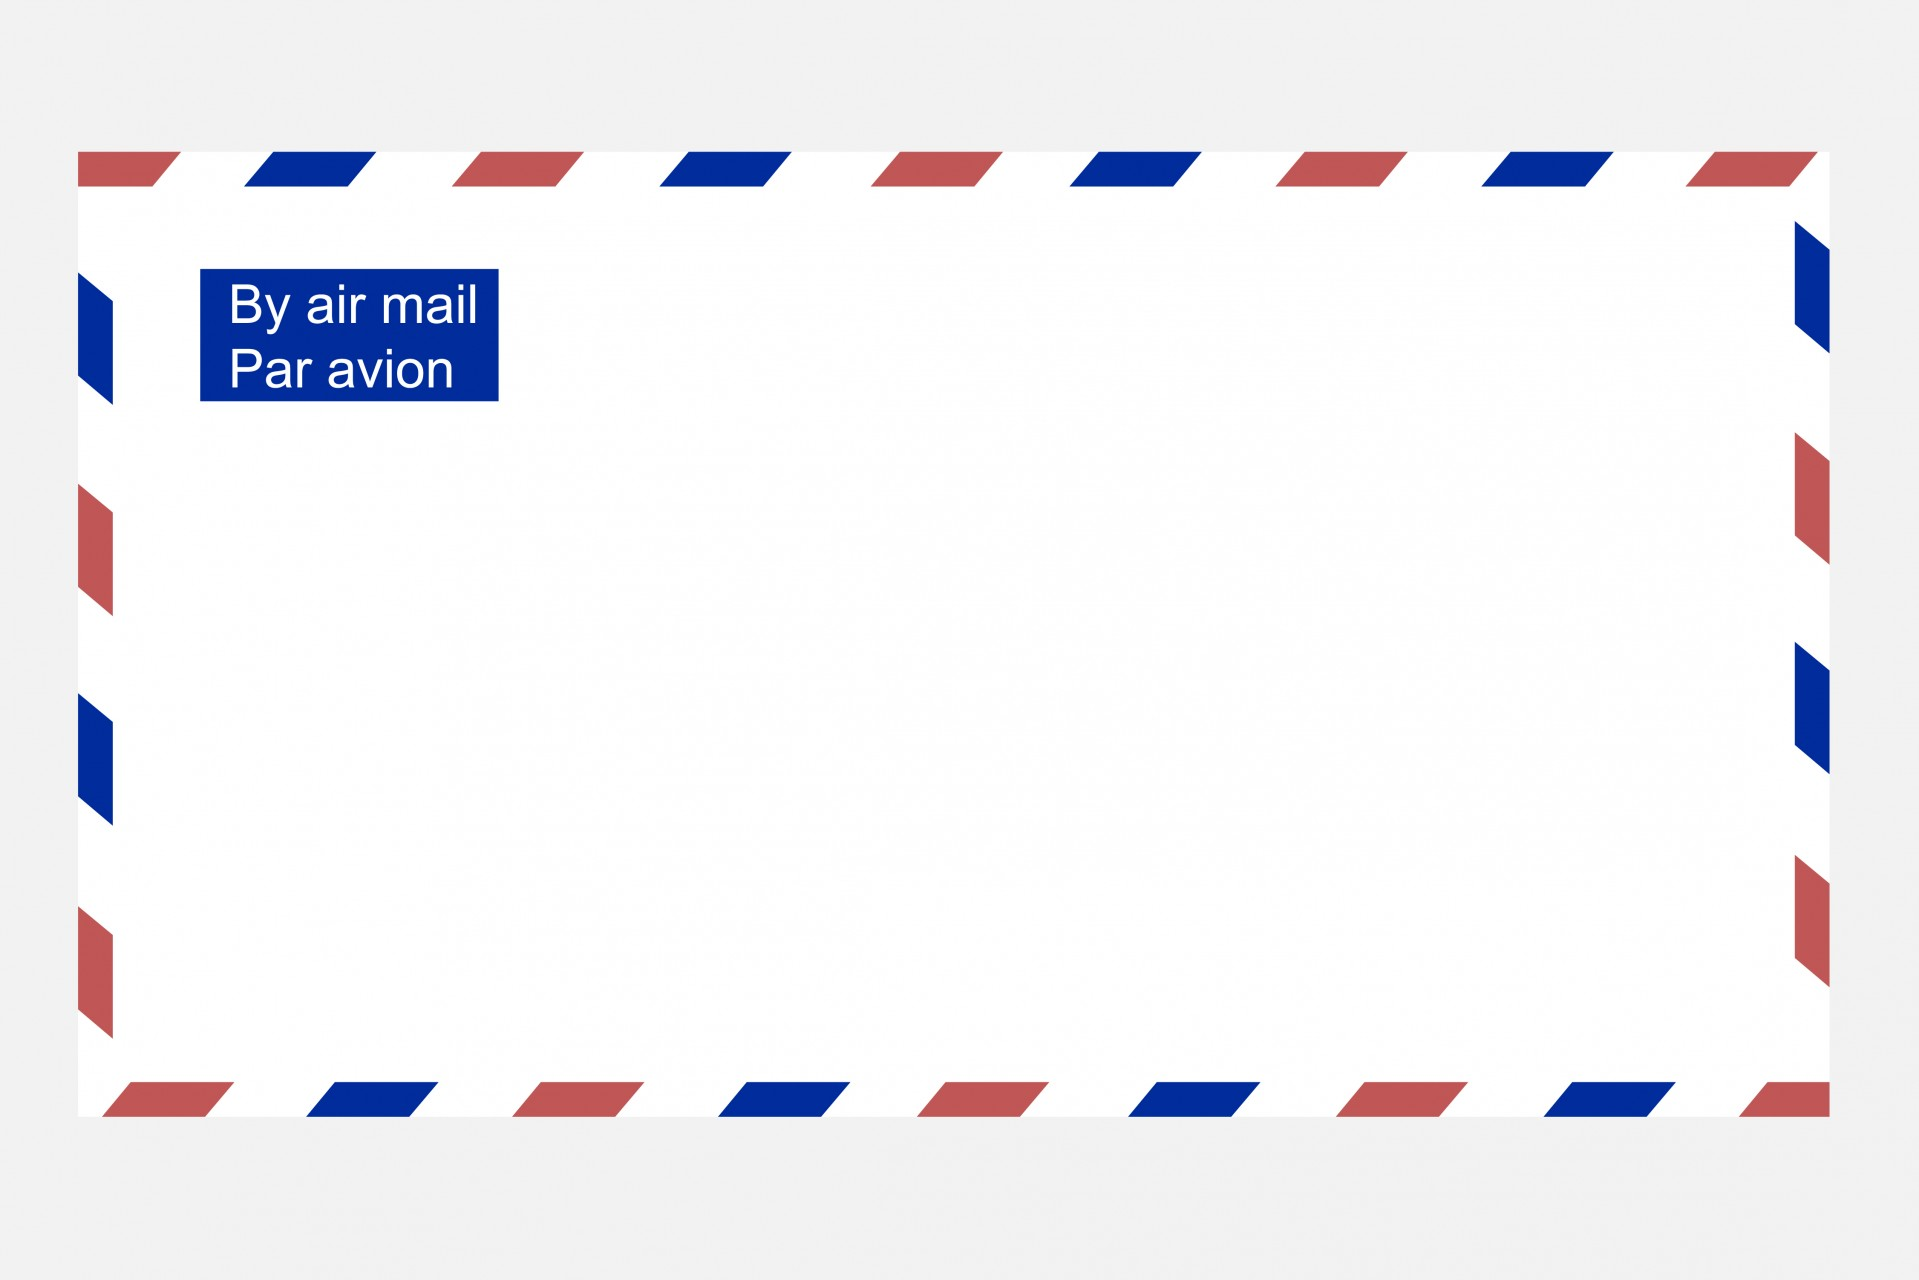 Envelope clipart par avion. Airmail free stock photo